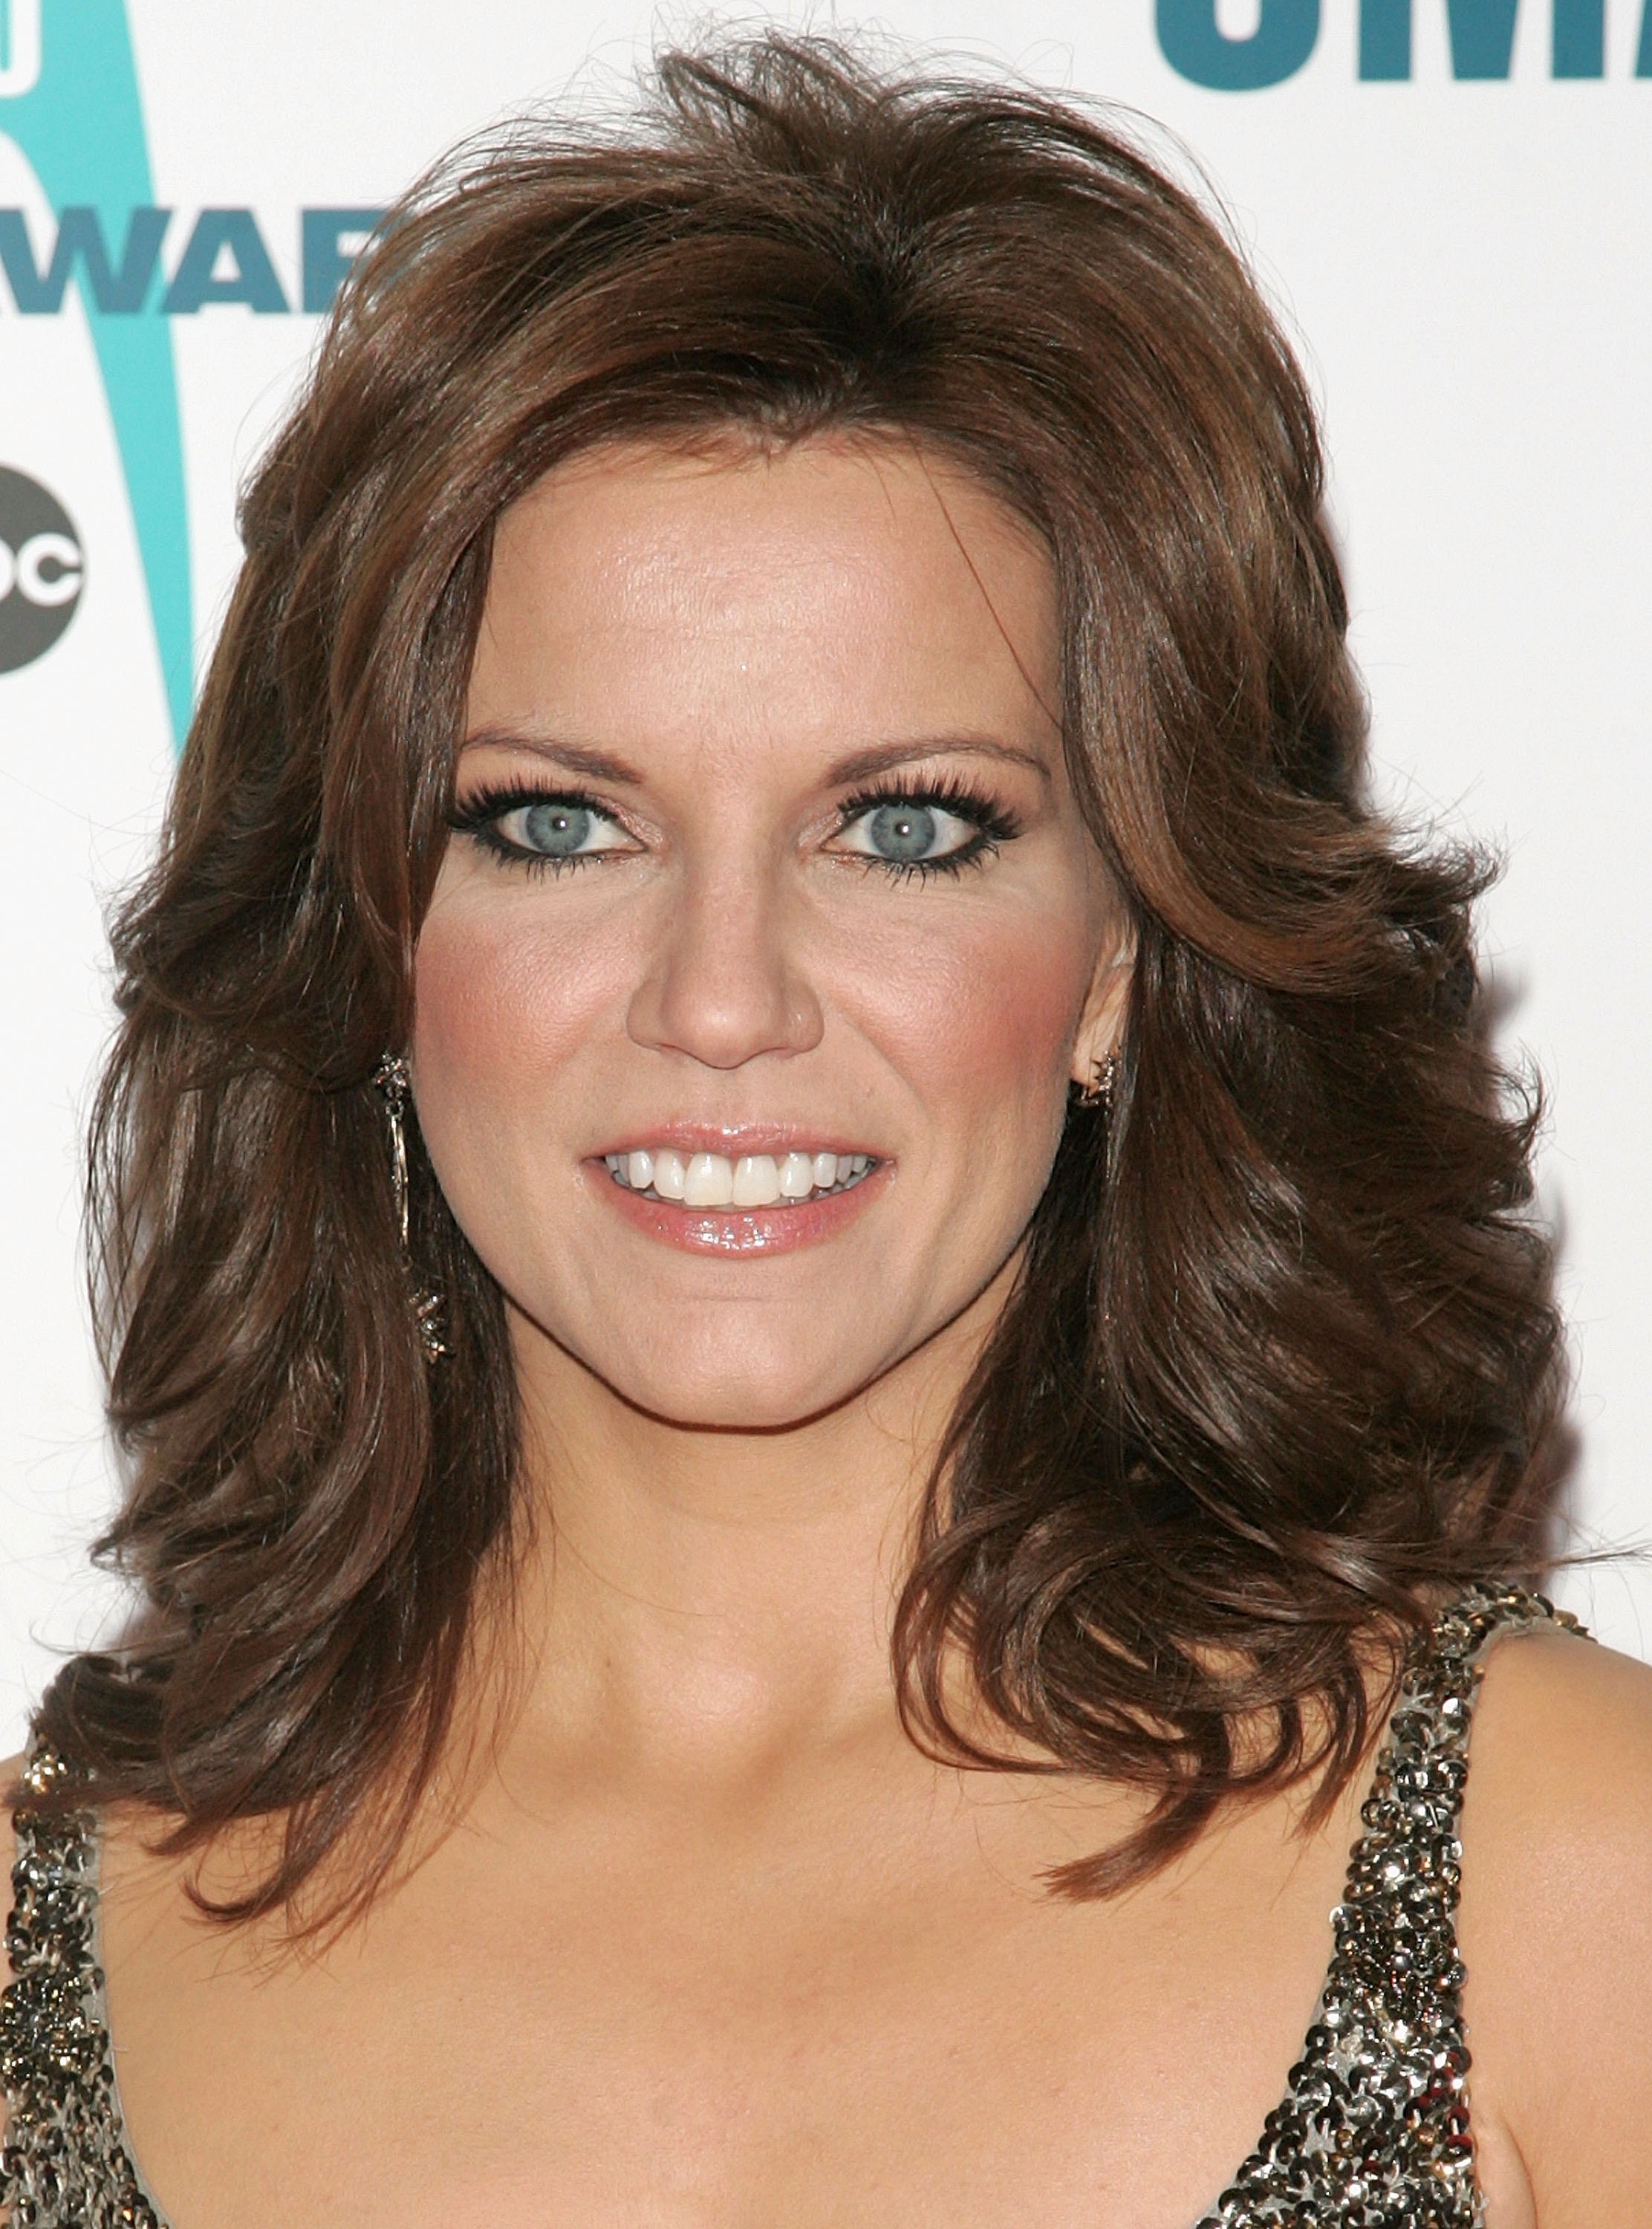 Martina Mcbride Images Crazy Gallery